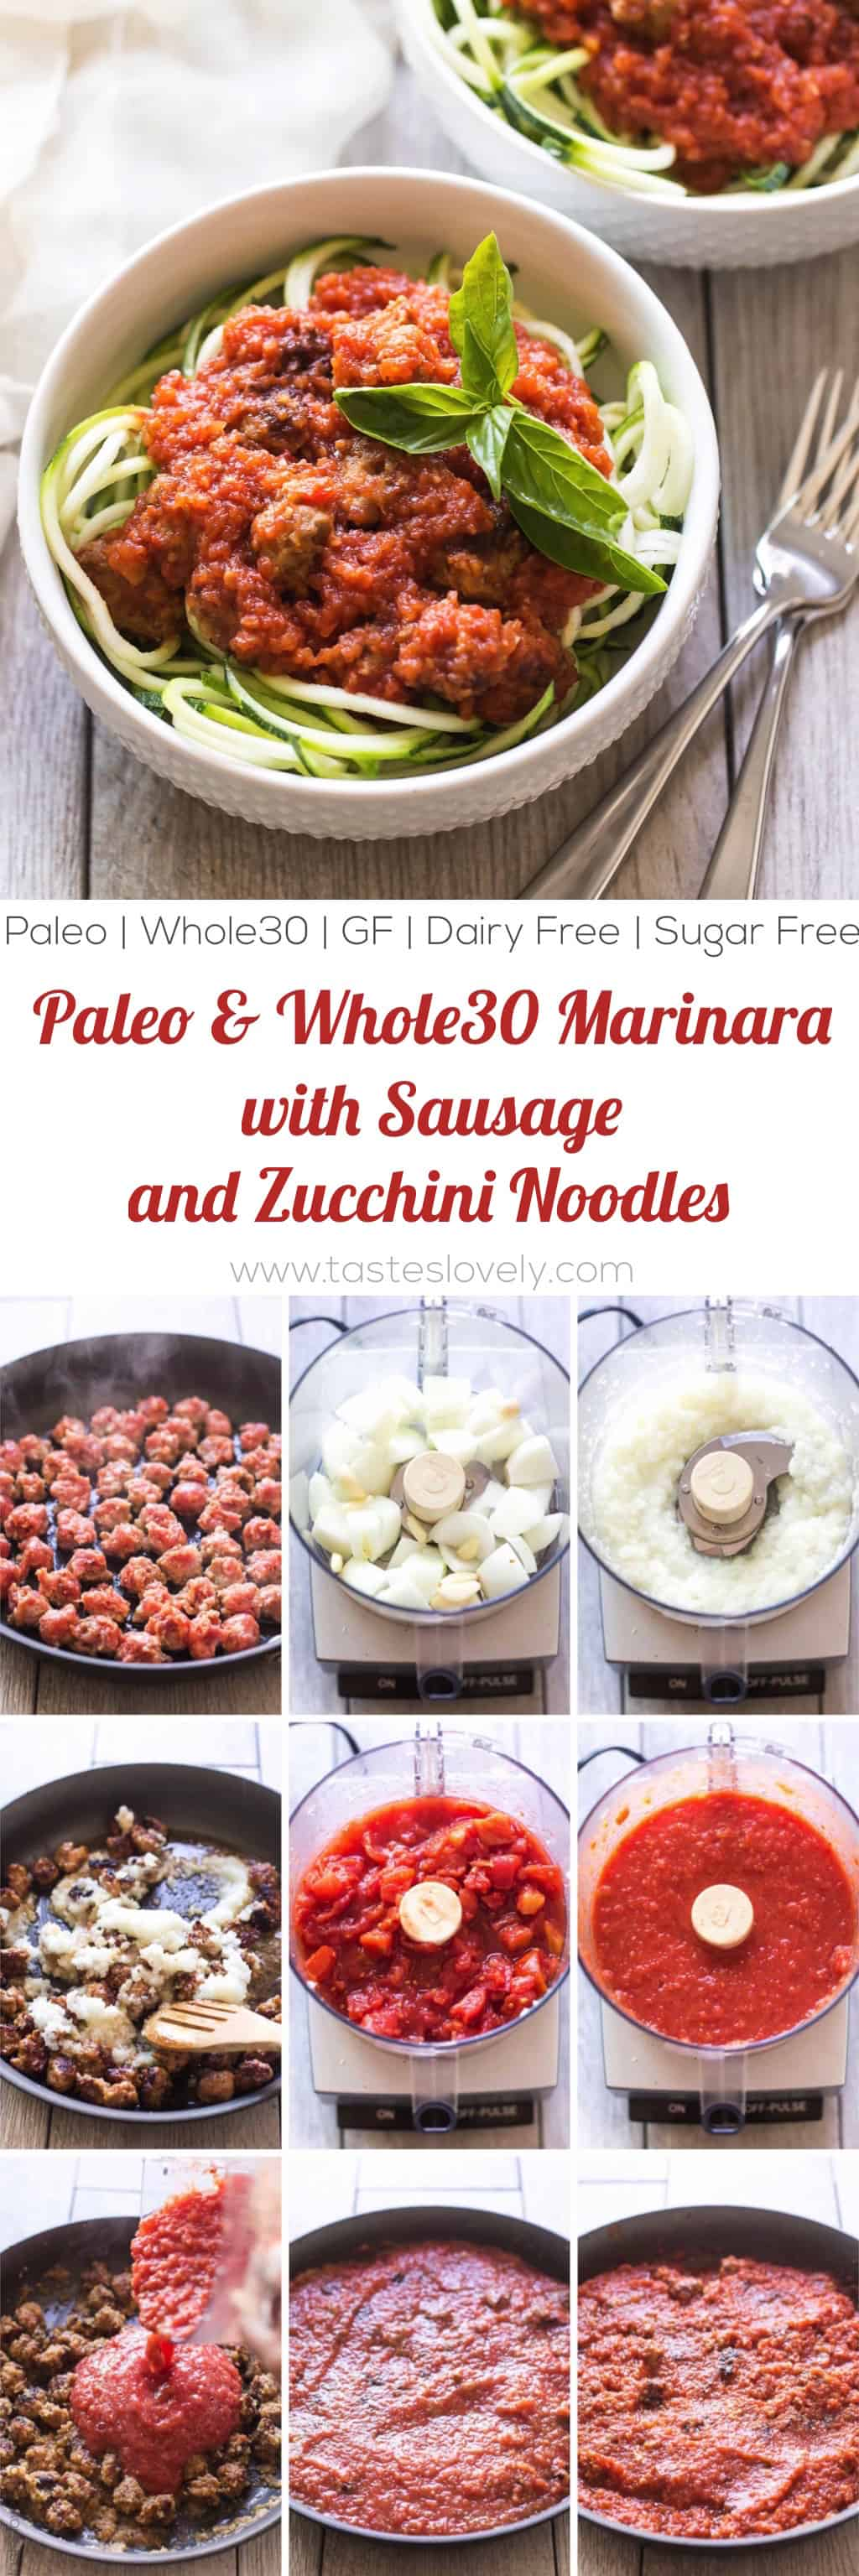 Homemade paleo & Whole30 marinara sauce, made from canned tomatoes with italian sausage. Served over zucchini noodles. A healthy and delicious dinner recipe! Paleo, whole30, gluten free, grain free, dairy free, sugar free, clean eating.